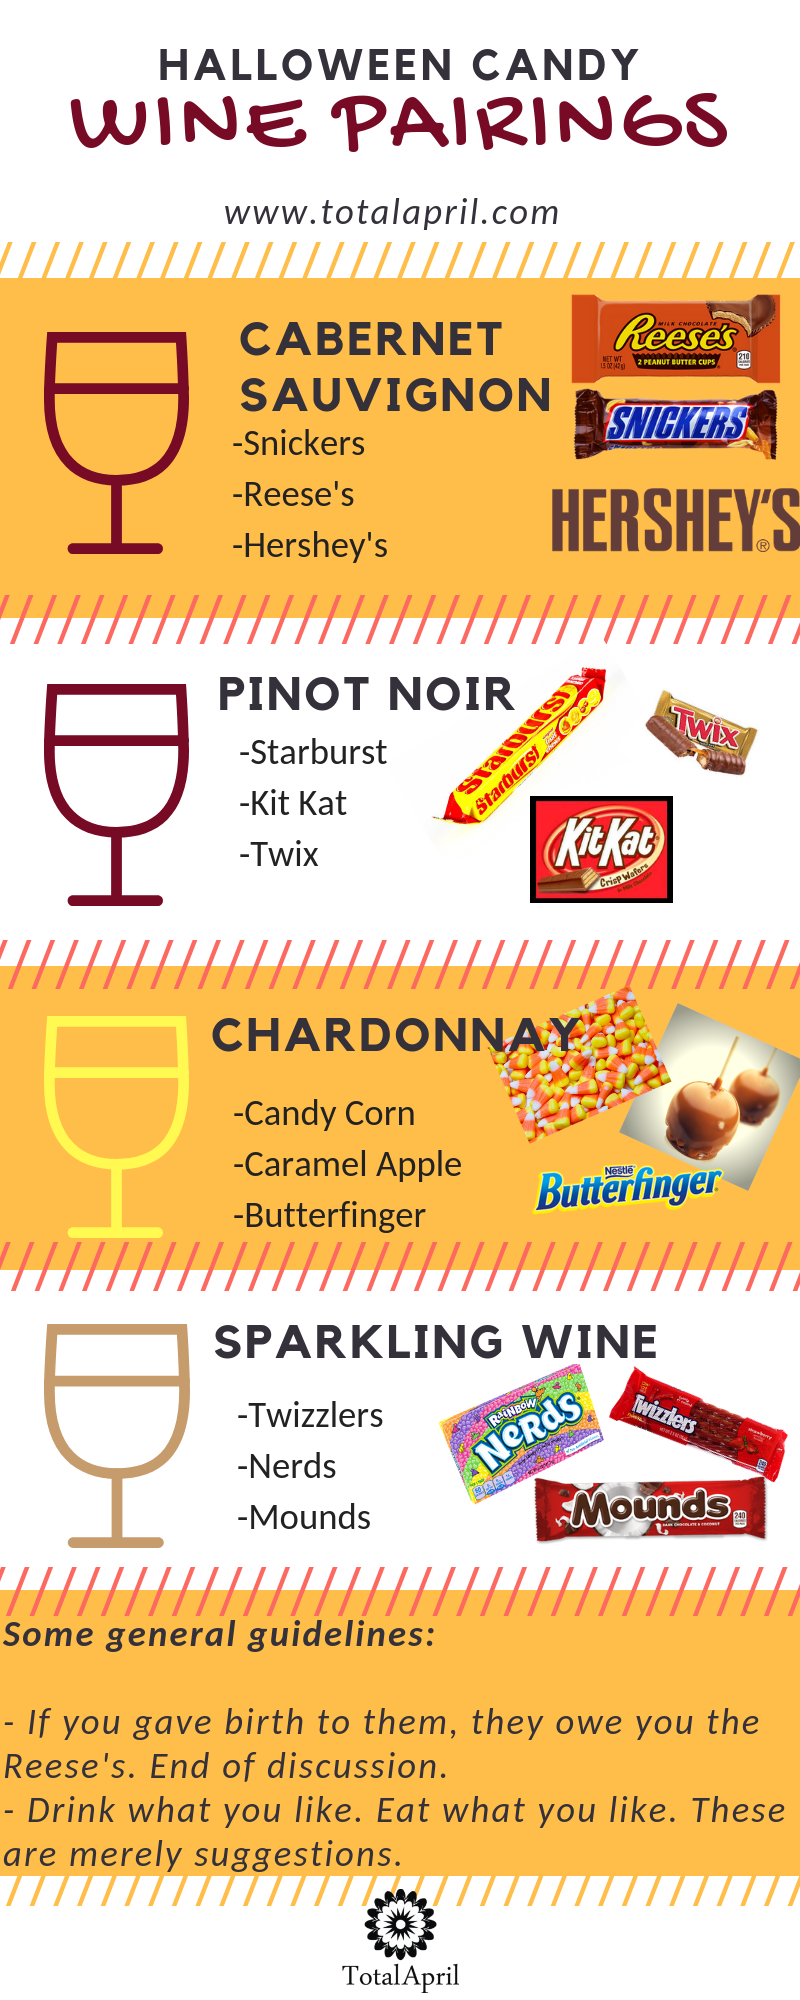 Halloween Candy Wine Pairing Guide.png